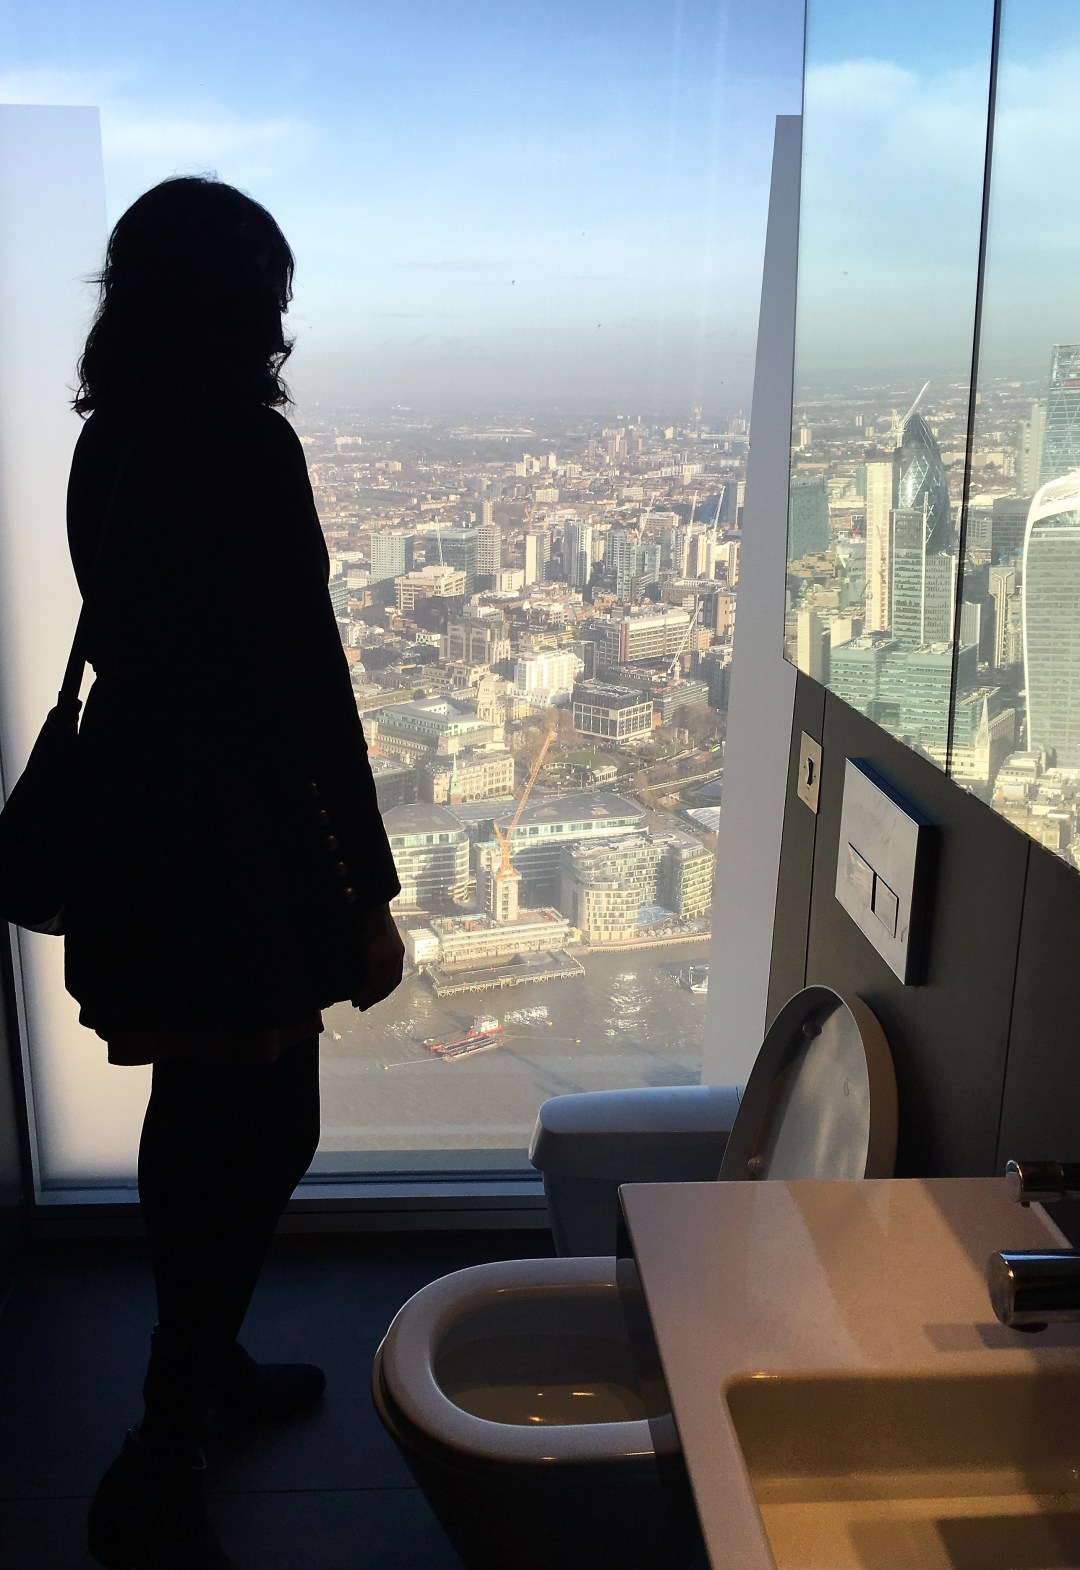 A BIRTHDAY VISIT TO THE SHARD: A THRONE WITH A VIEW